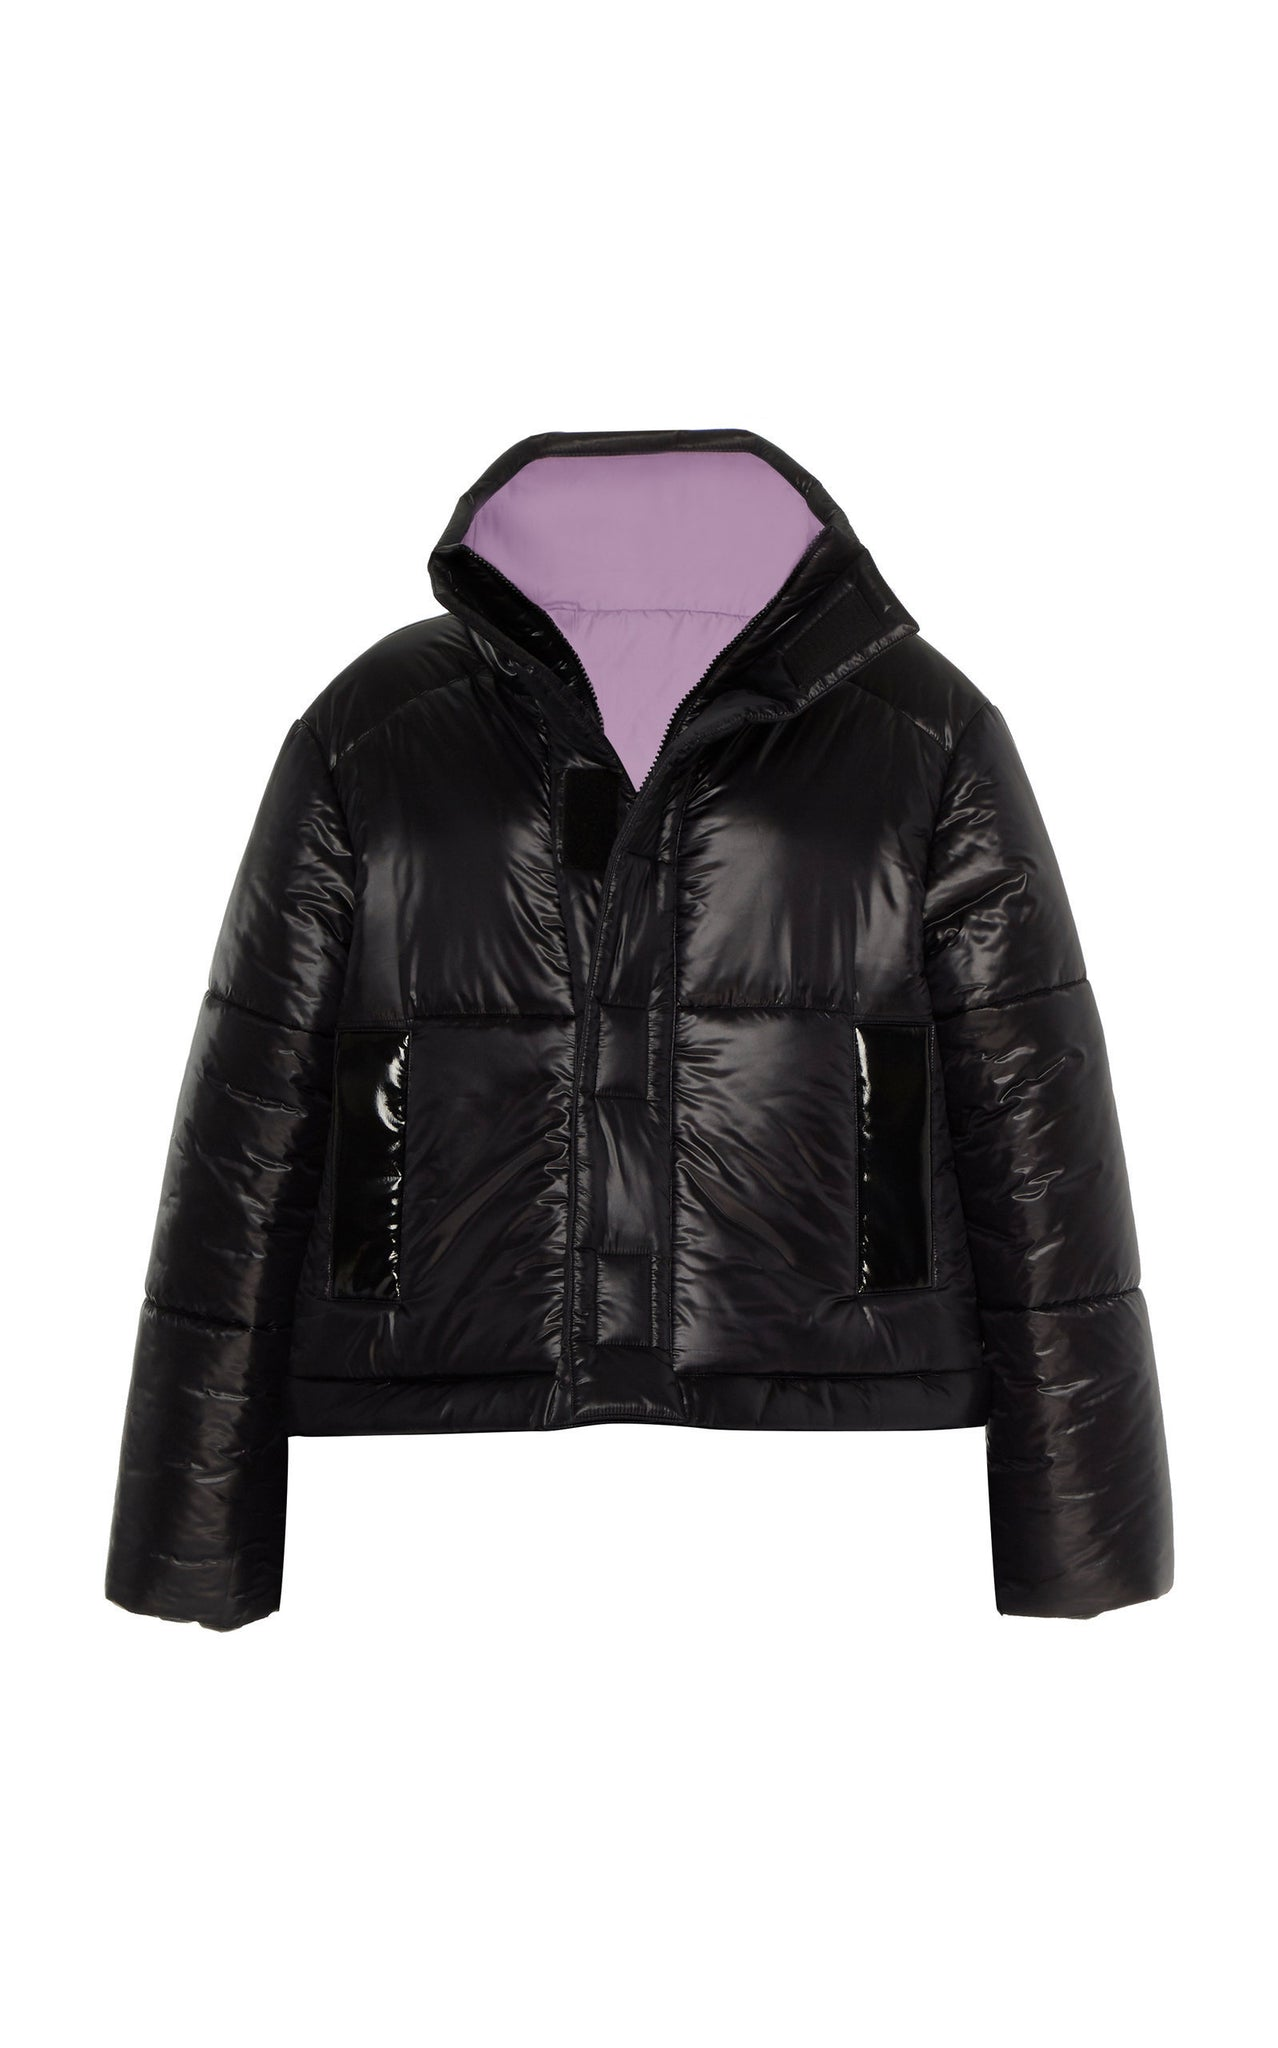 BLACK / LAVENDER REVERSIBLE CONVERTIBLE DOWN COAT